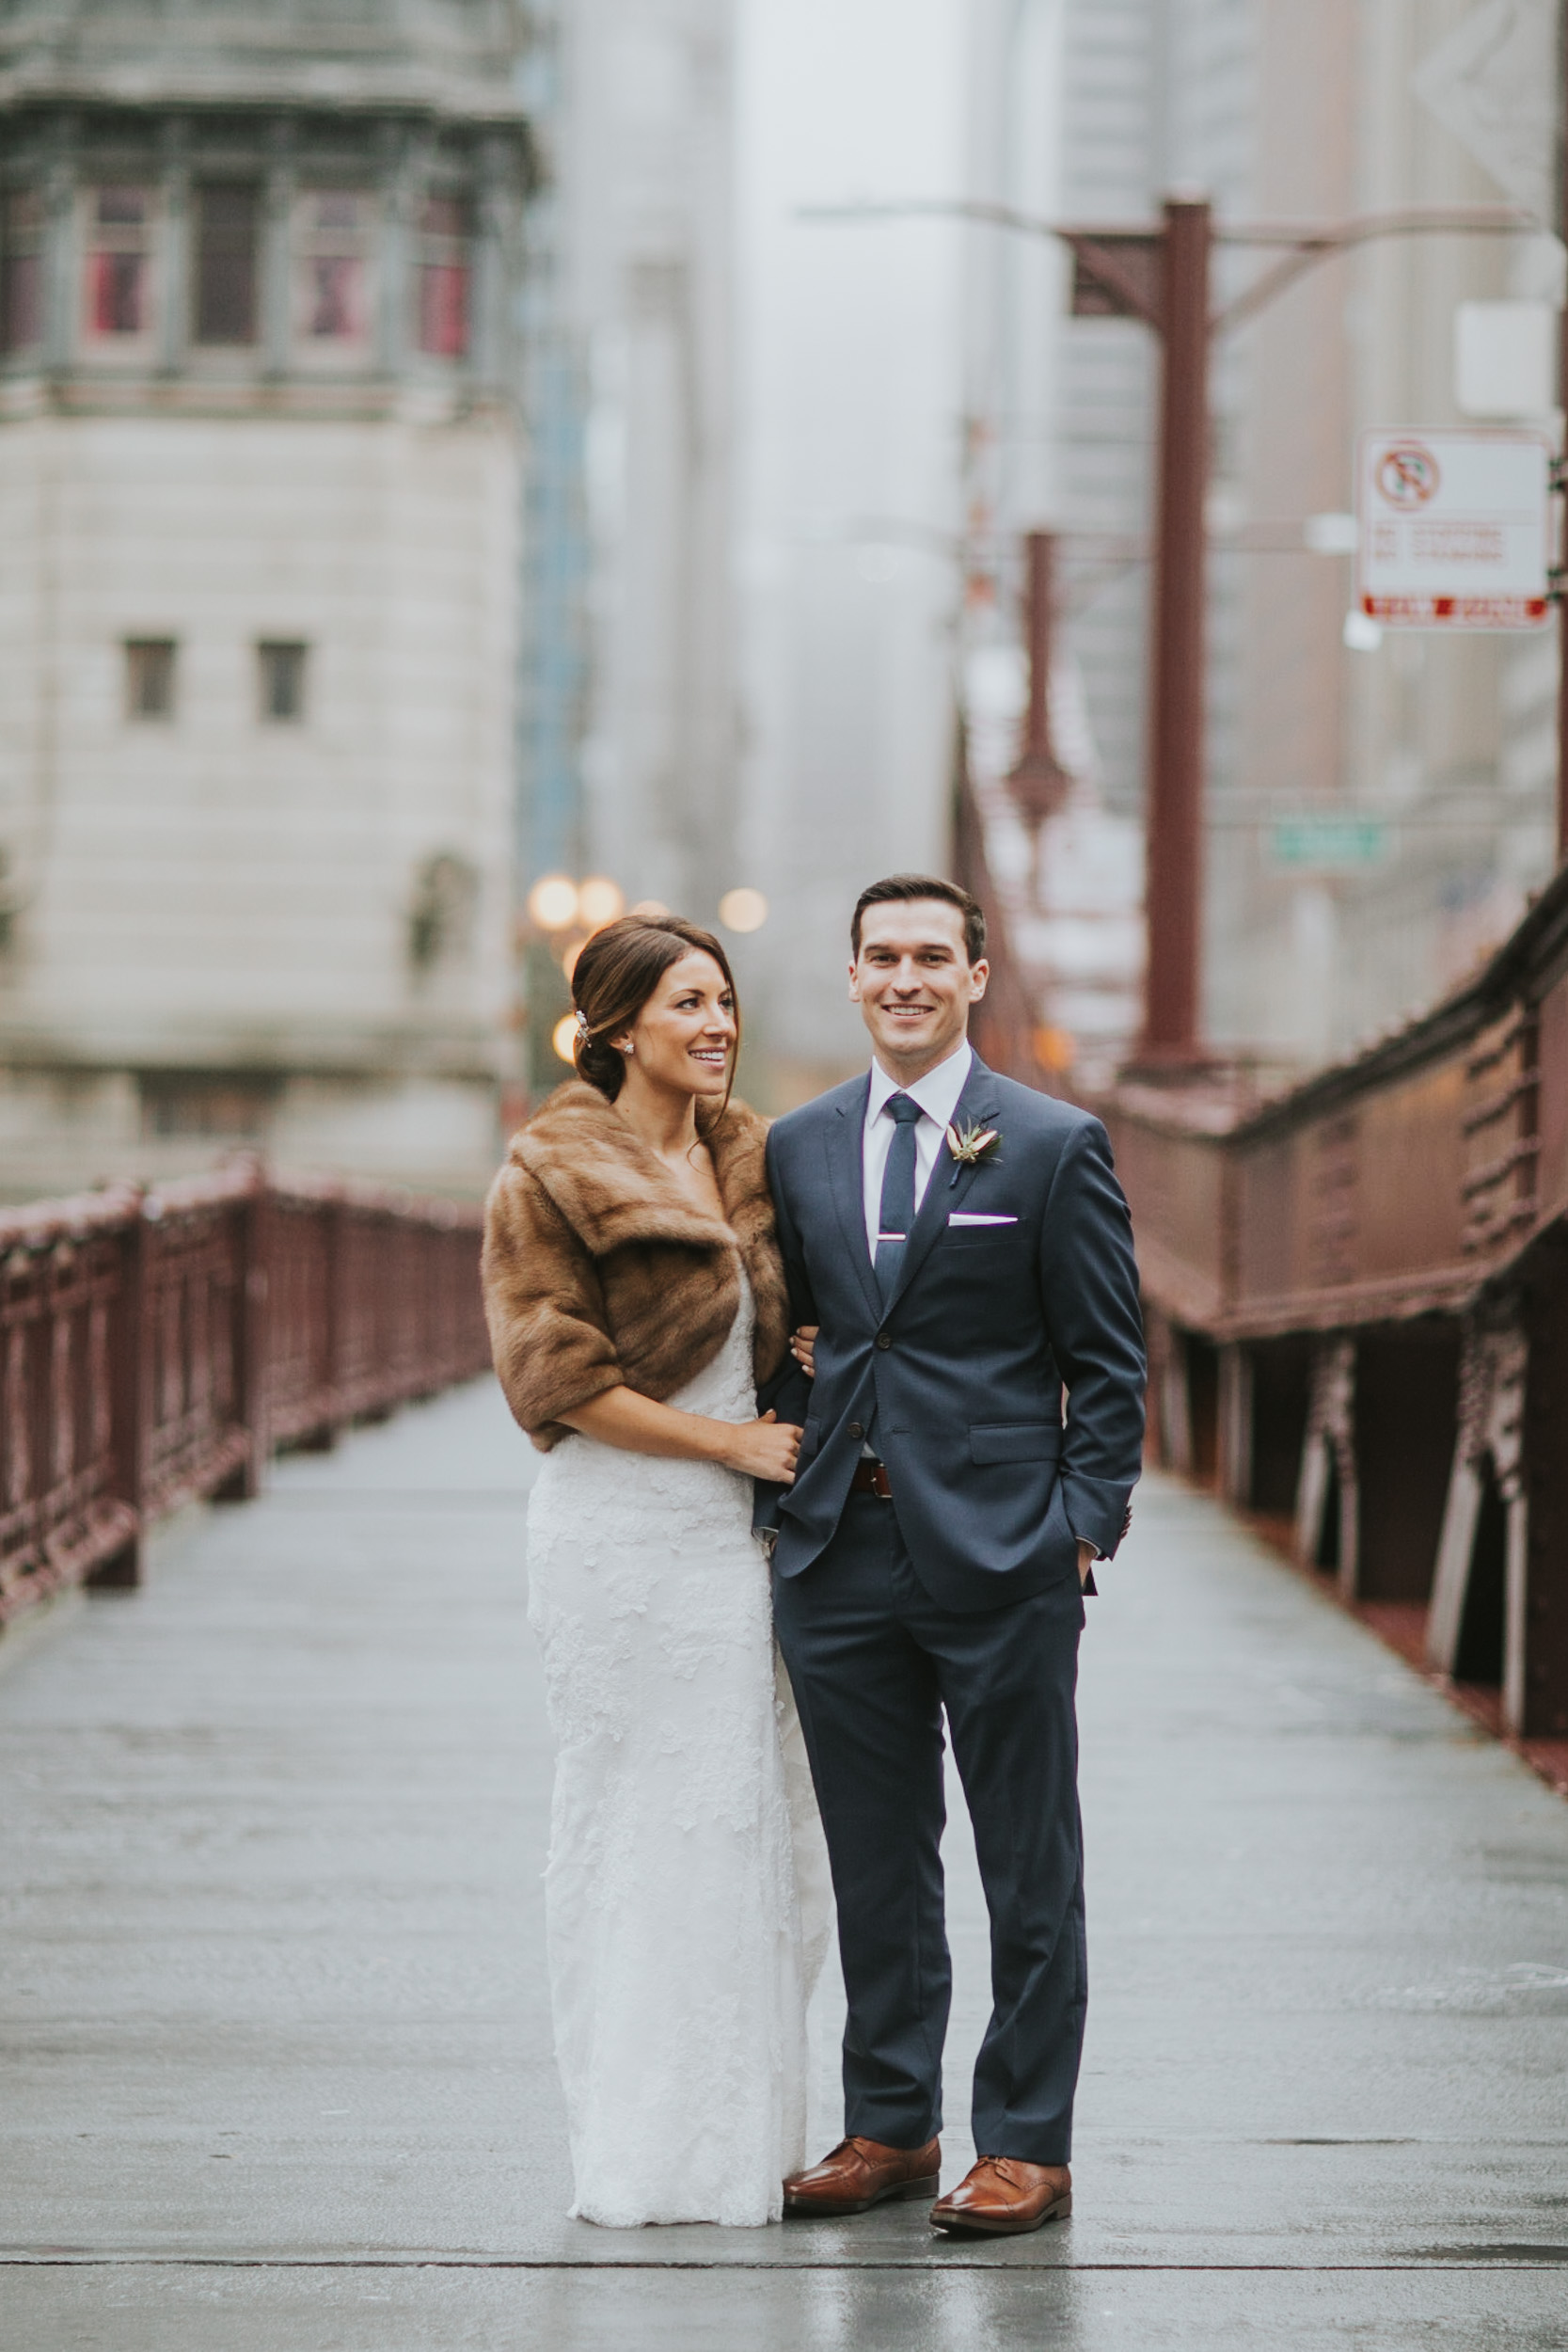 HaroldWashingtonLibraryWedding_Polly C Photography 1704144052.jpg